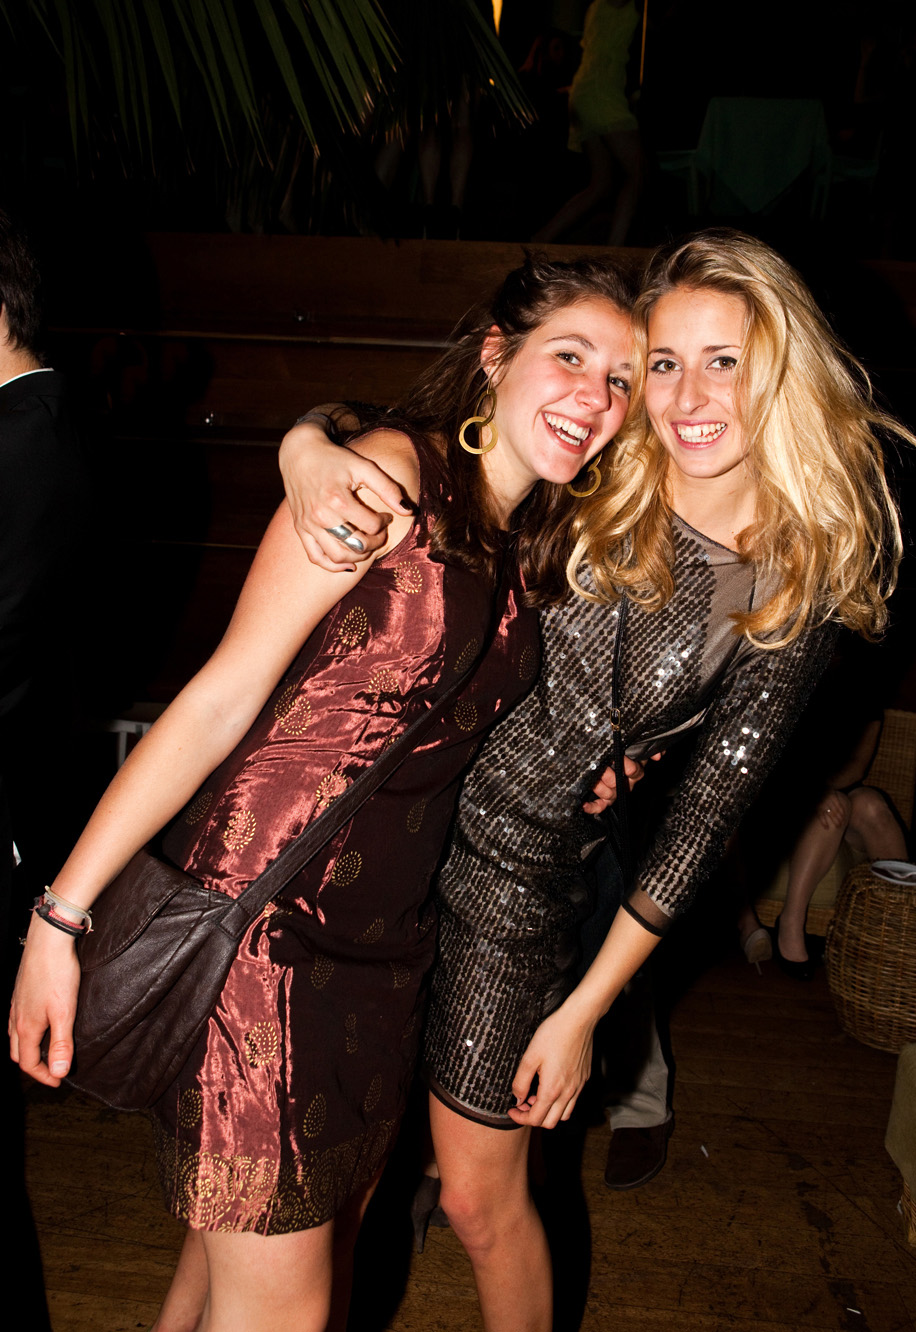 Parties01-Paola_Meloni_023.jpg